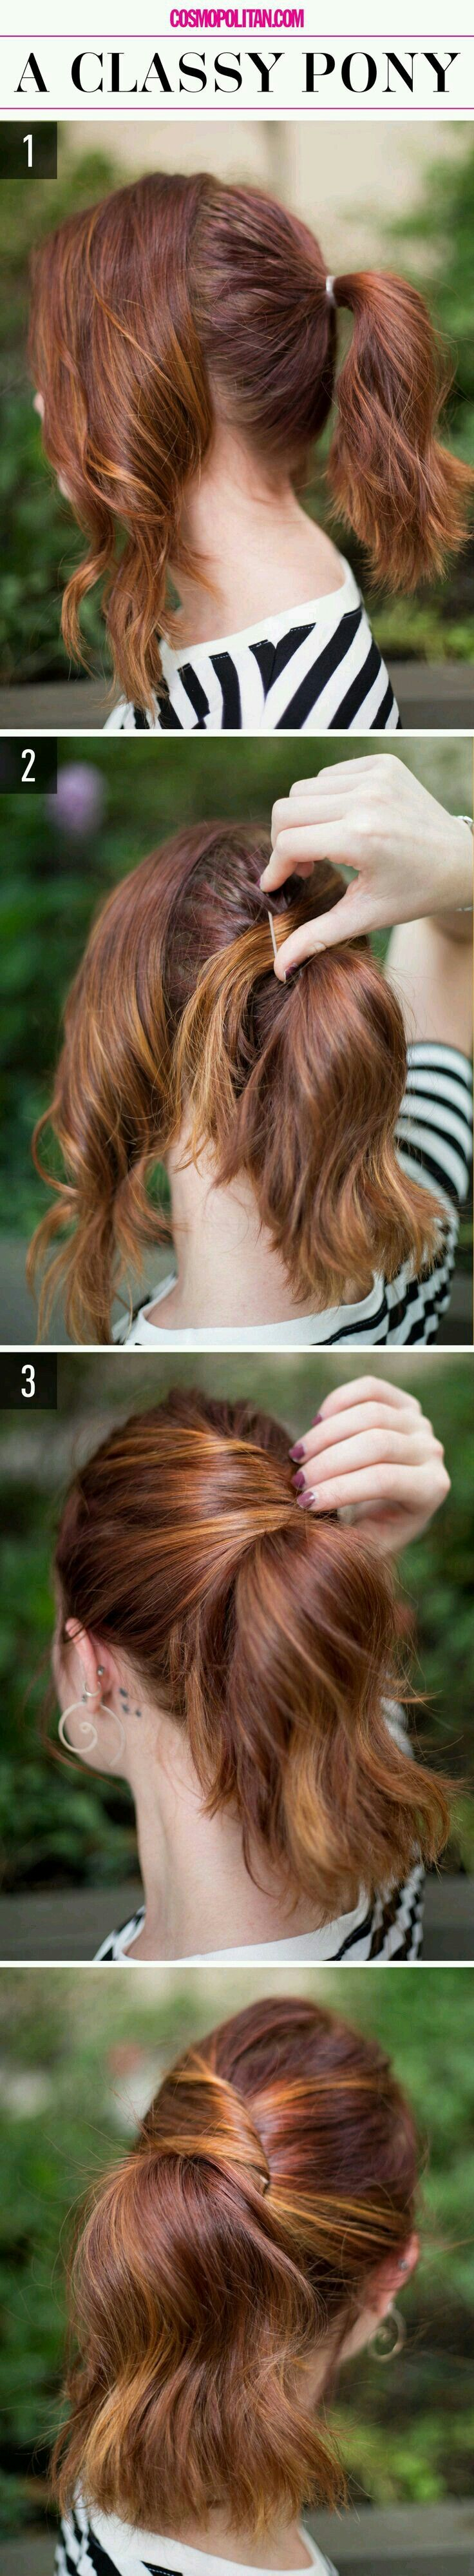 Pretty Hairstyles for Summer